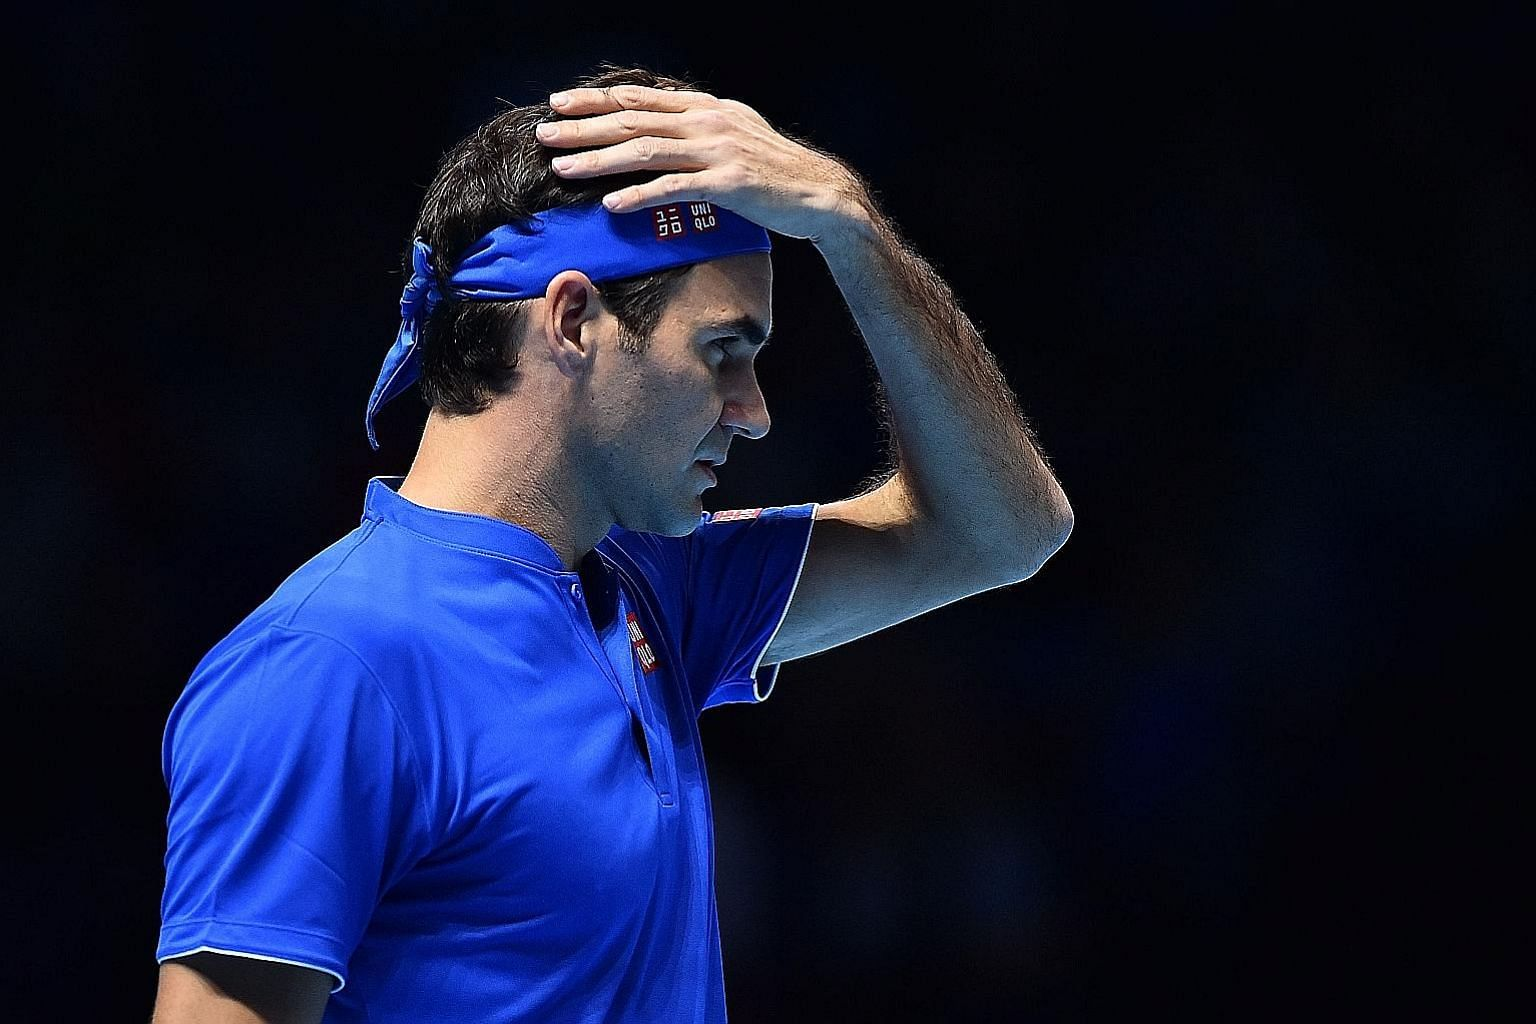 Roger Federer searching for answers during his 7-6 (7-4), 6-3 loss to Kei Nishikori in the ATP Finals on Sunday. The normally cool Swiss was warned for ball abuse in the first set.